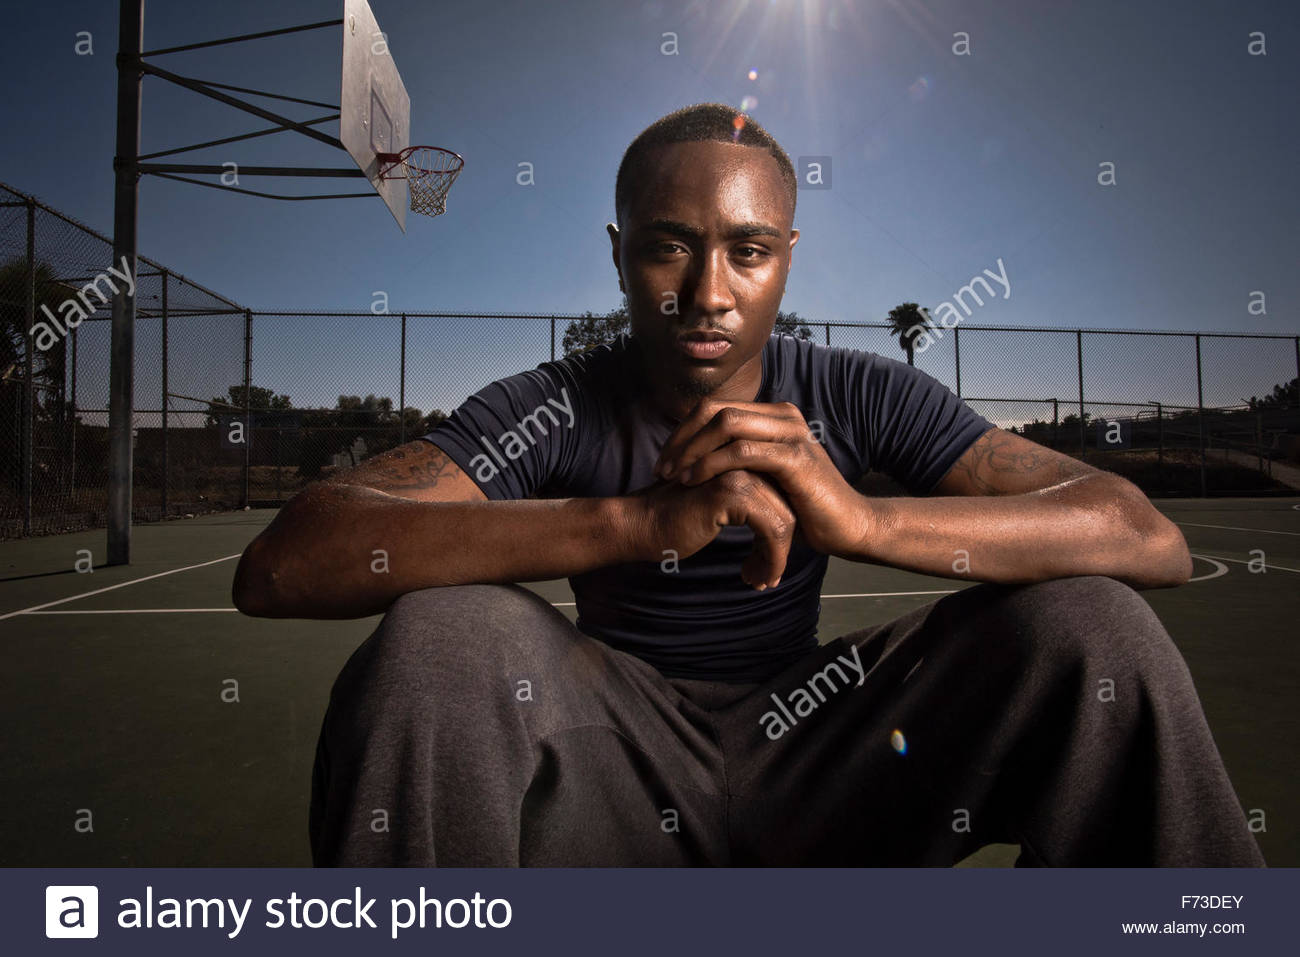 A basketball player rests on the court after a game. - Stock Image